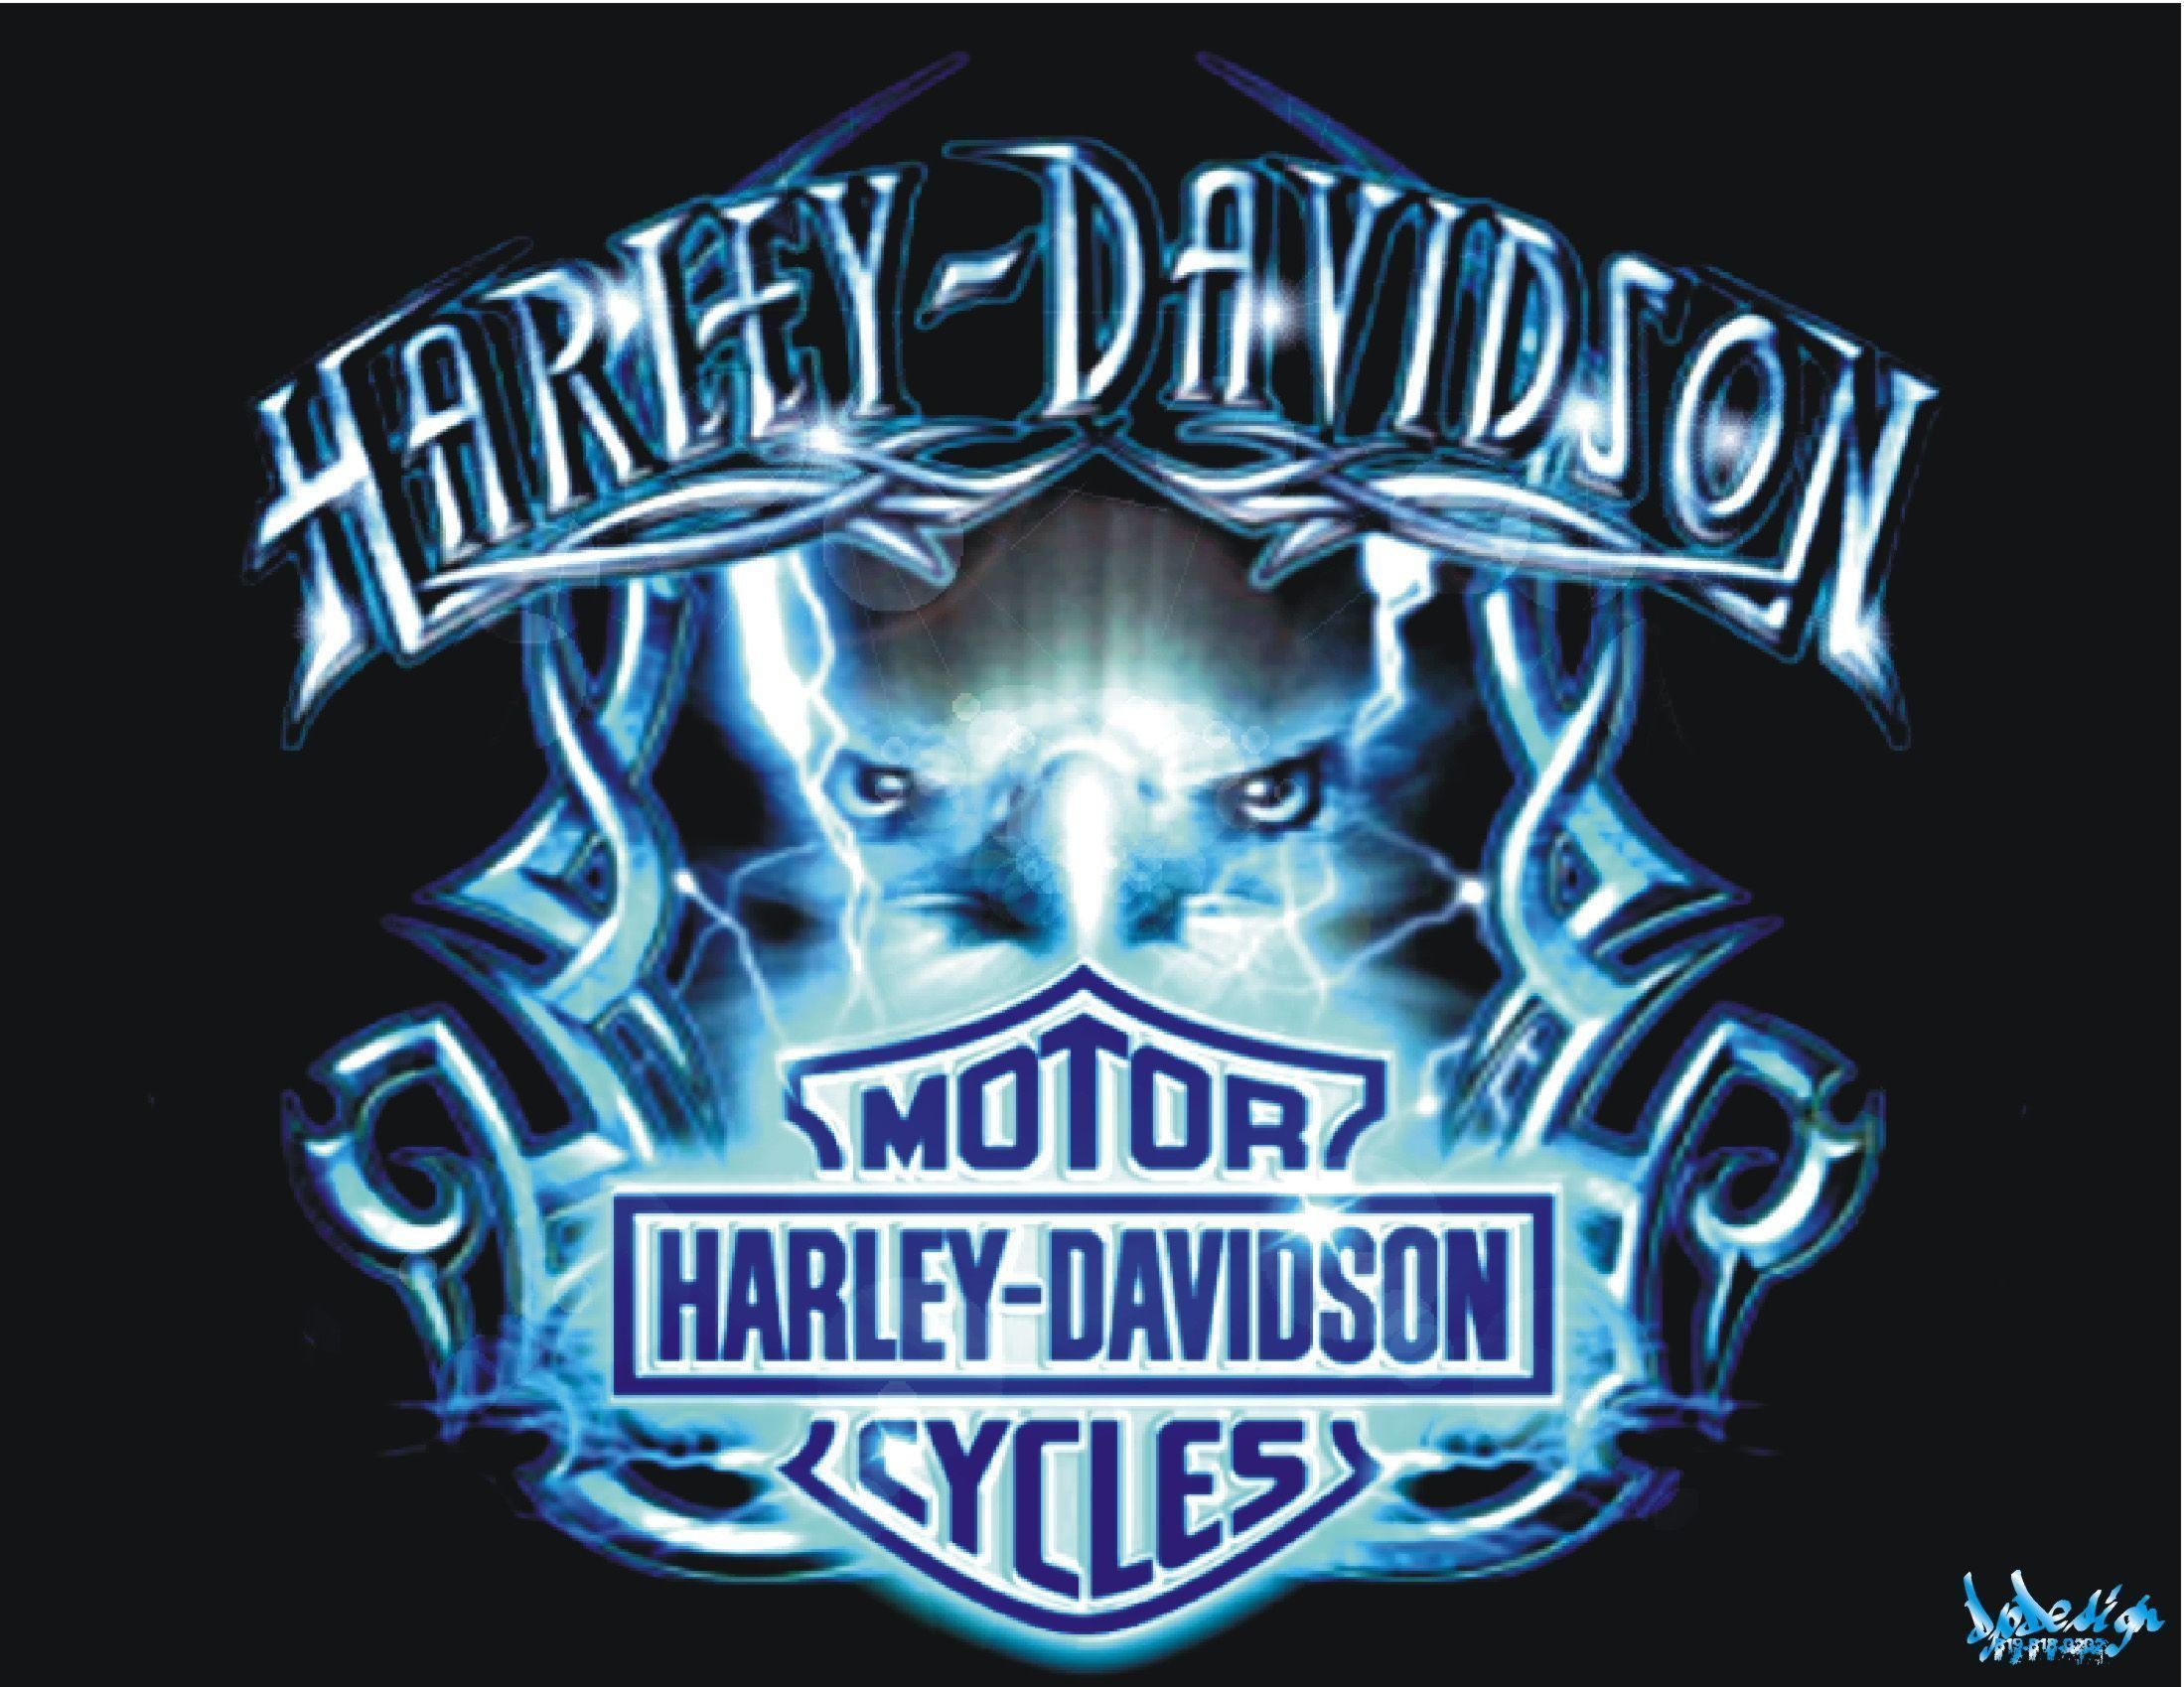 2199x1699 Wallpapers For Harley Davidson Logo With Flames Wallpaper